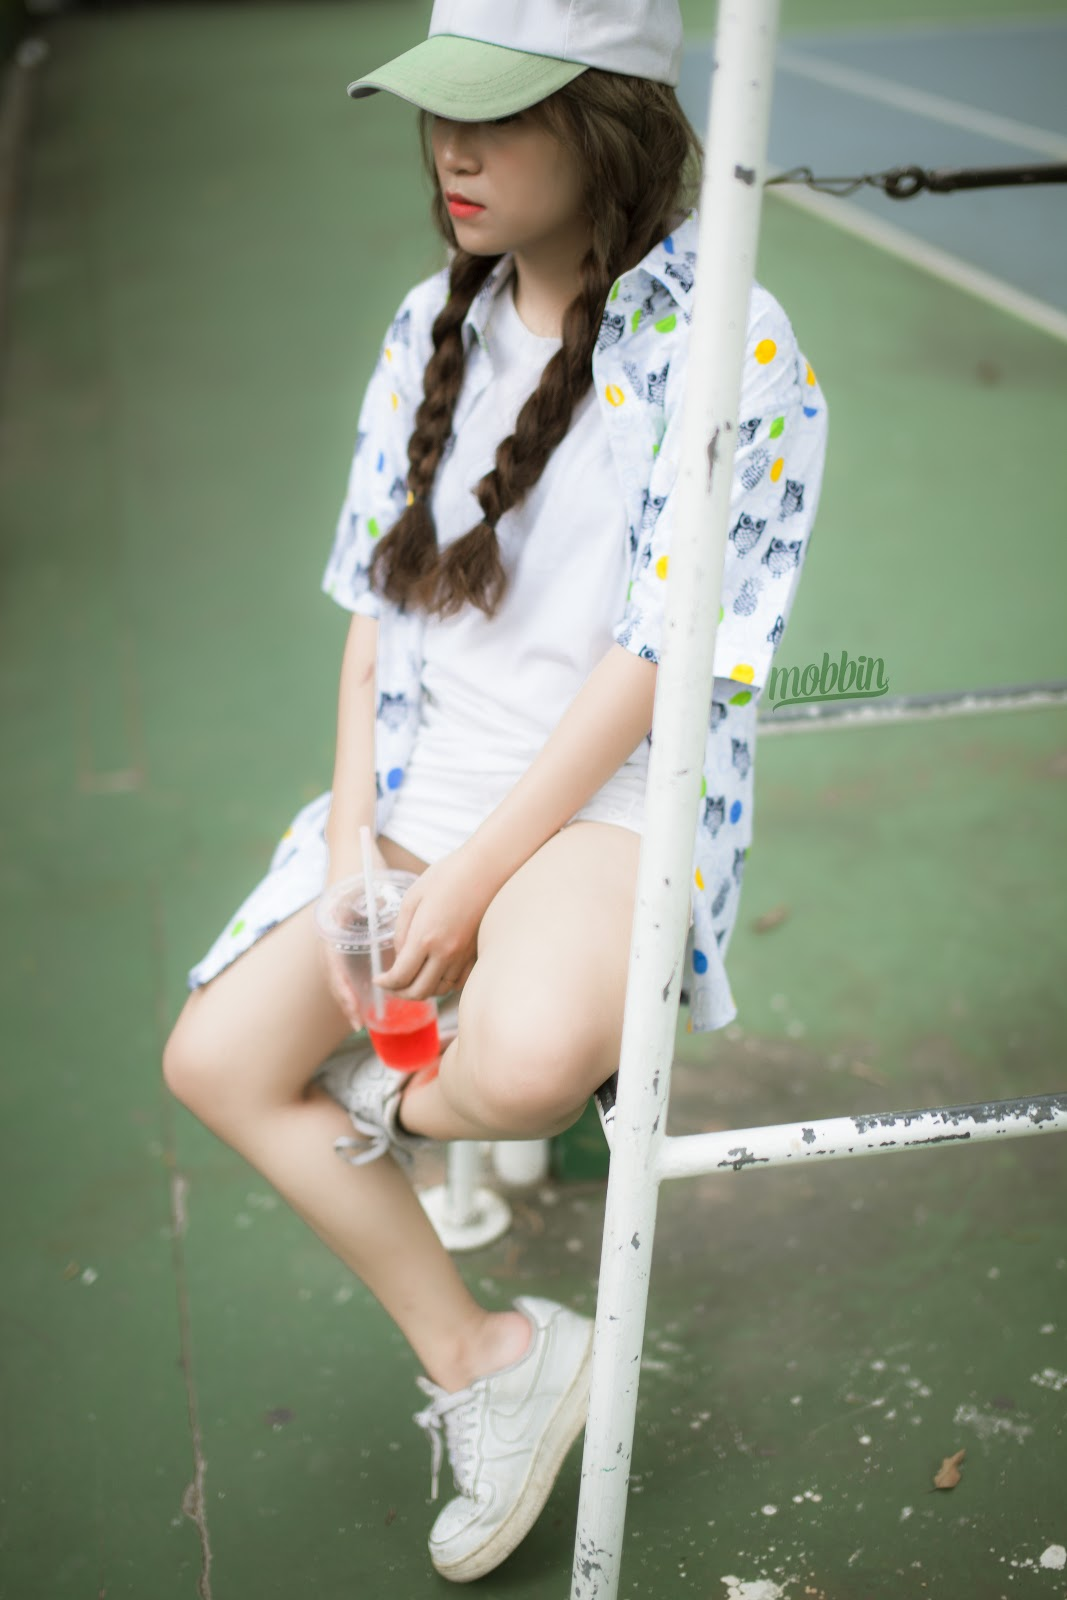 Vietnamese Beauty Girls by Mụp Photography (P4) 56 pics